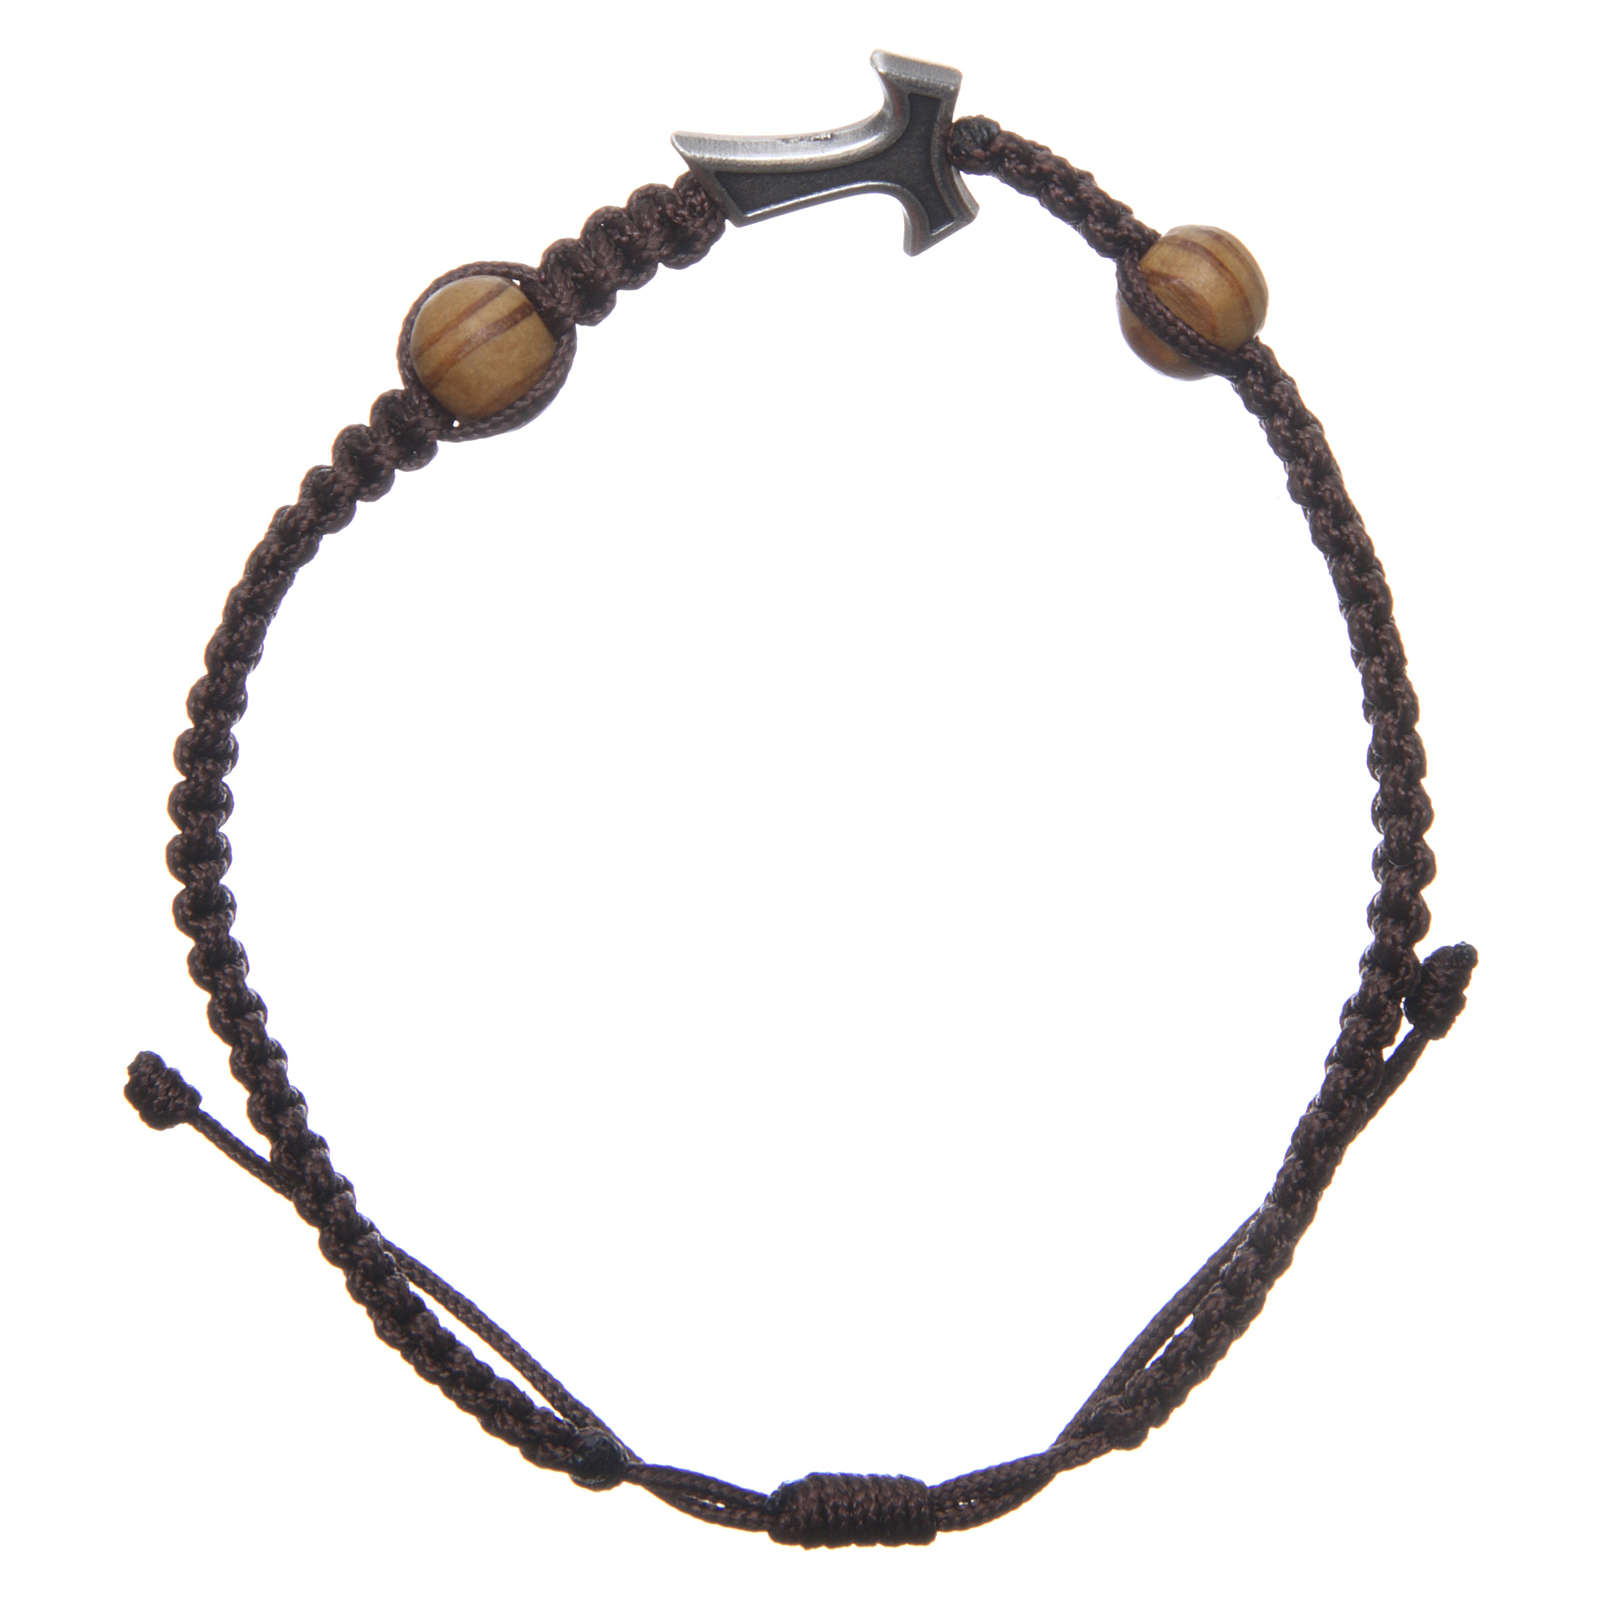 Medjugorje bracelet with Tau cross in metal and two grains on brown rope 4